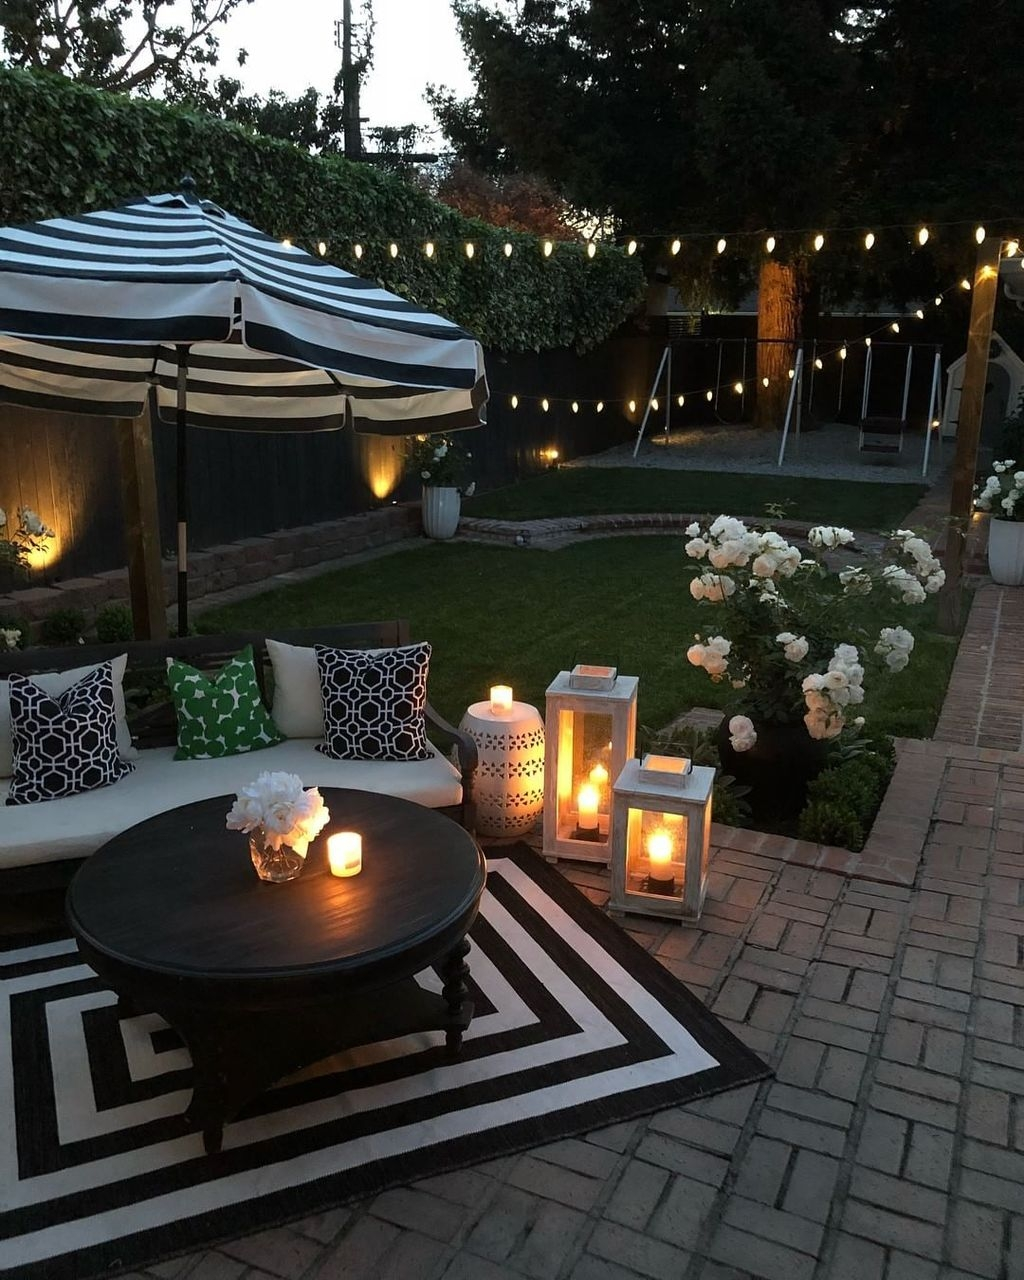 20+ Attractive Small Backyard Design Ideas On A Budget ... on Small Backyard Renovations id=57888